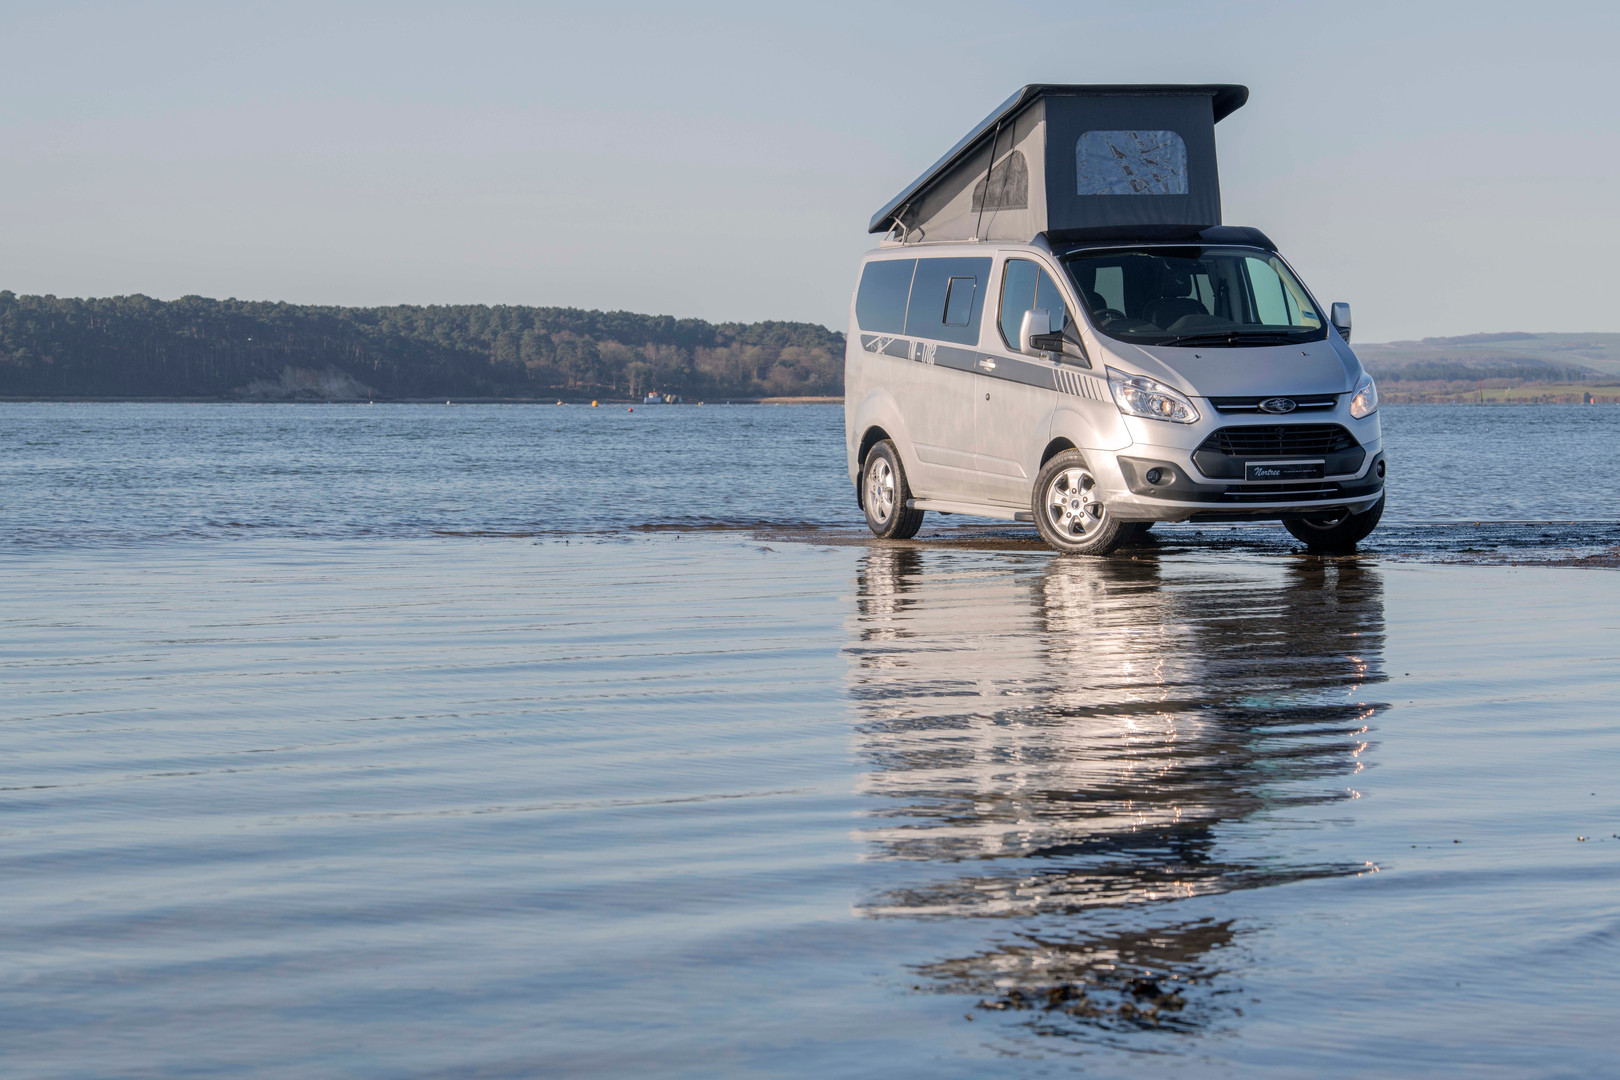 Ad picture fora bespoke campervan company.